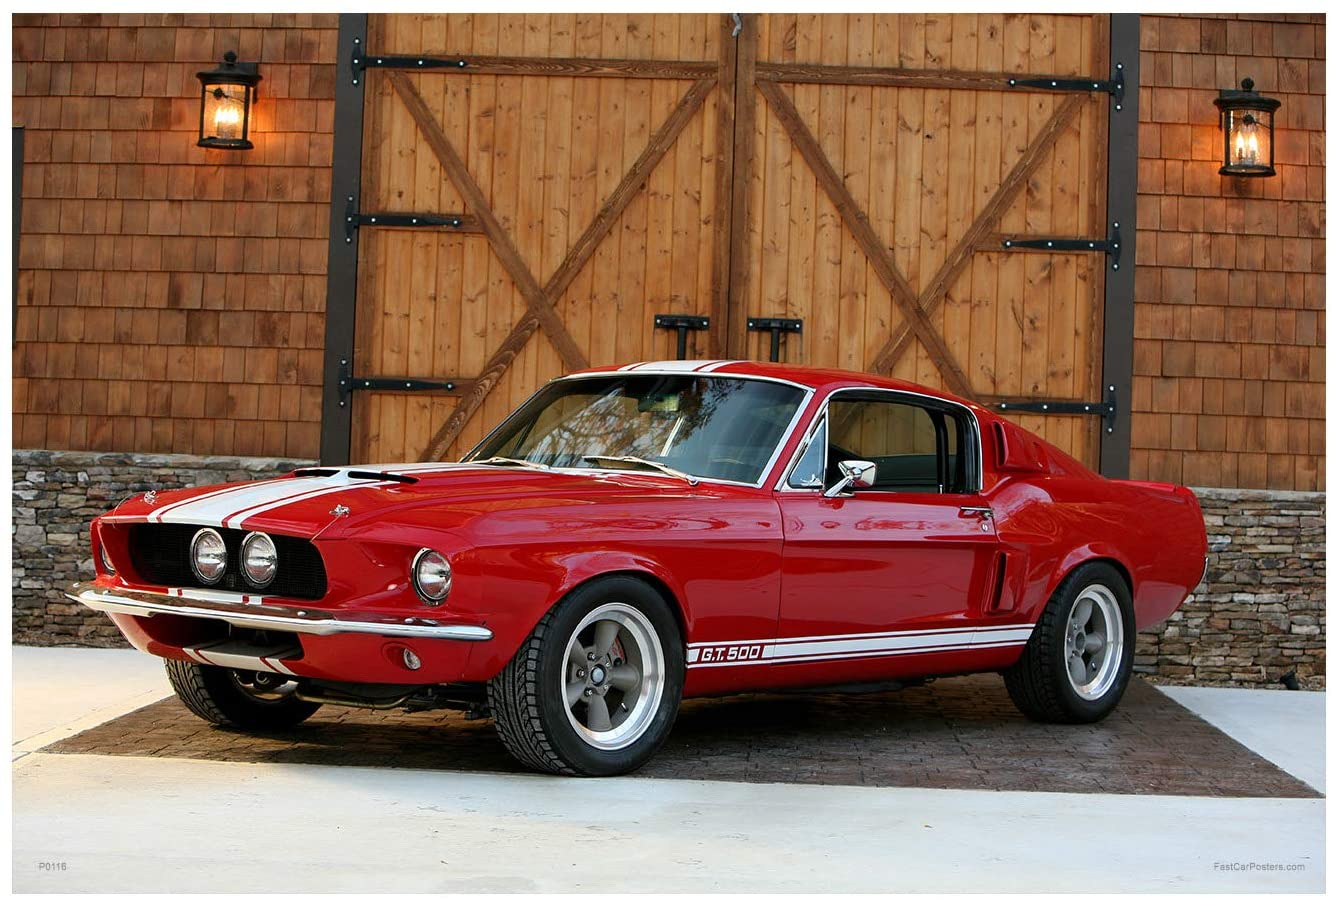 Ford Muctang Shelby Cobra GT350